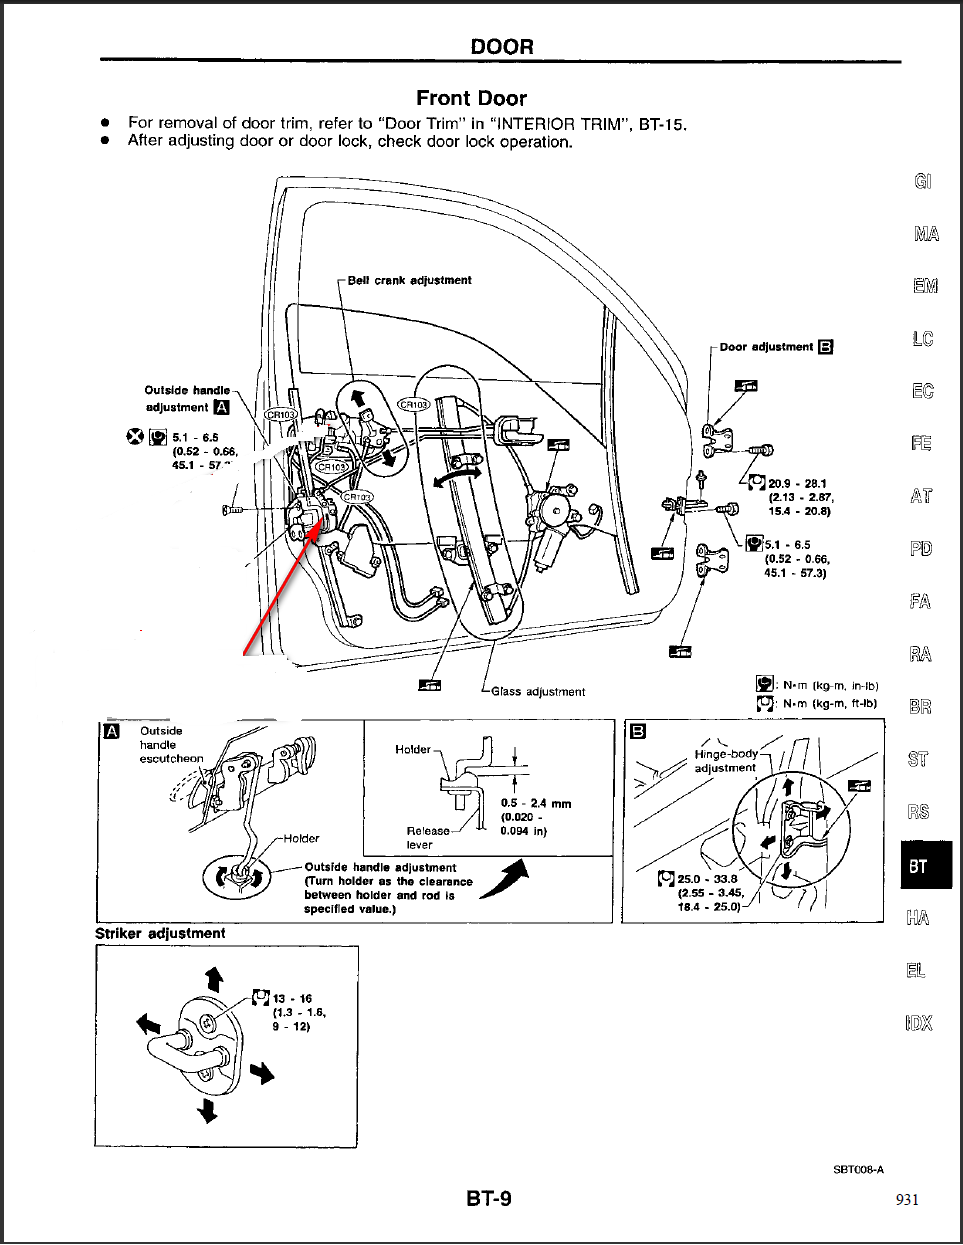 pdf] diagram of door lock mechanism on frant door of ford explorer, Wiring diagram